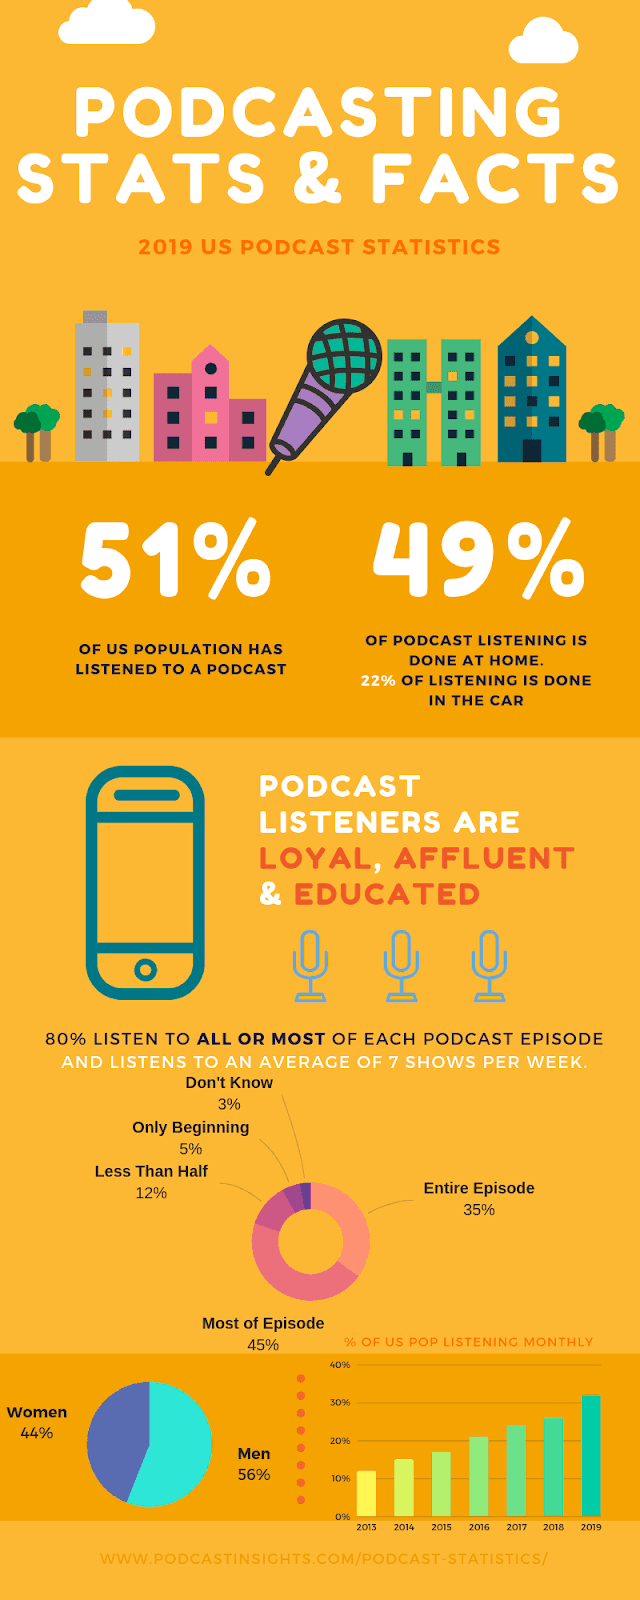 Podcasting stats and facts